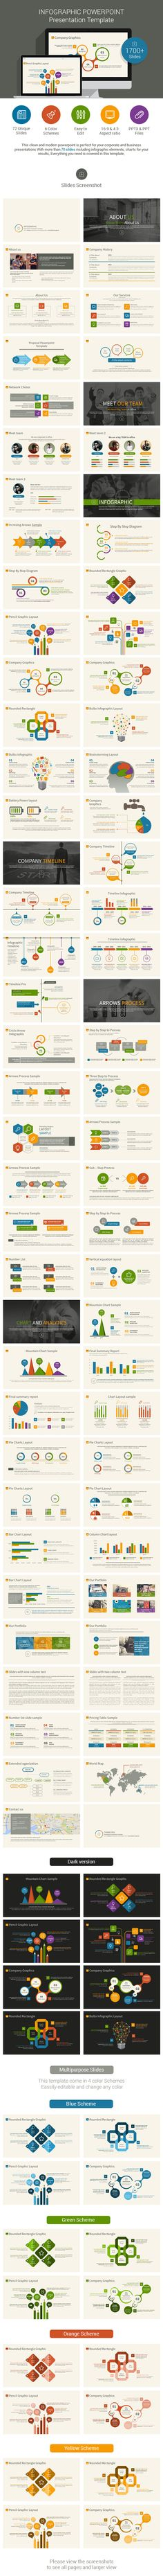 Infographic Powerpoint Template PowerPoint Template / Theme / Presentation / Slides / Background / Power Point #powerpoint #template #theme Keynote Design, Ppt Design, Graph Design, Slide Design, Layout Design, Presentation Design Template, Corporate Presentation, Presentation Layout, Powerpoint Presentation Templates